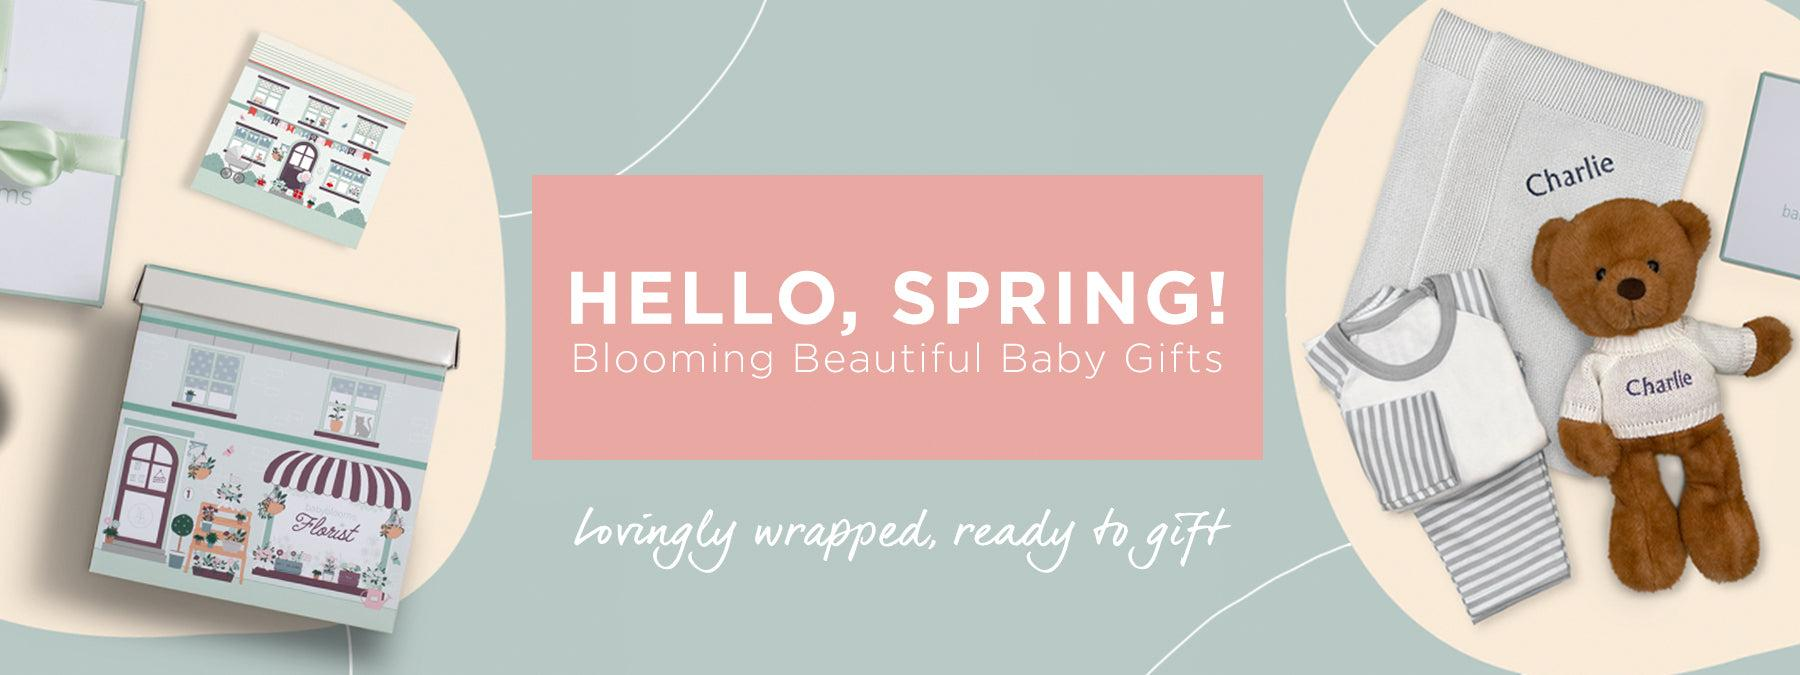 New baby gifts and baby hampers